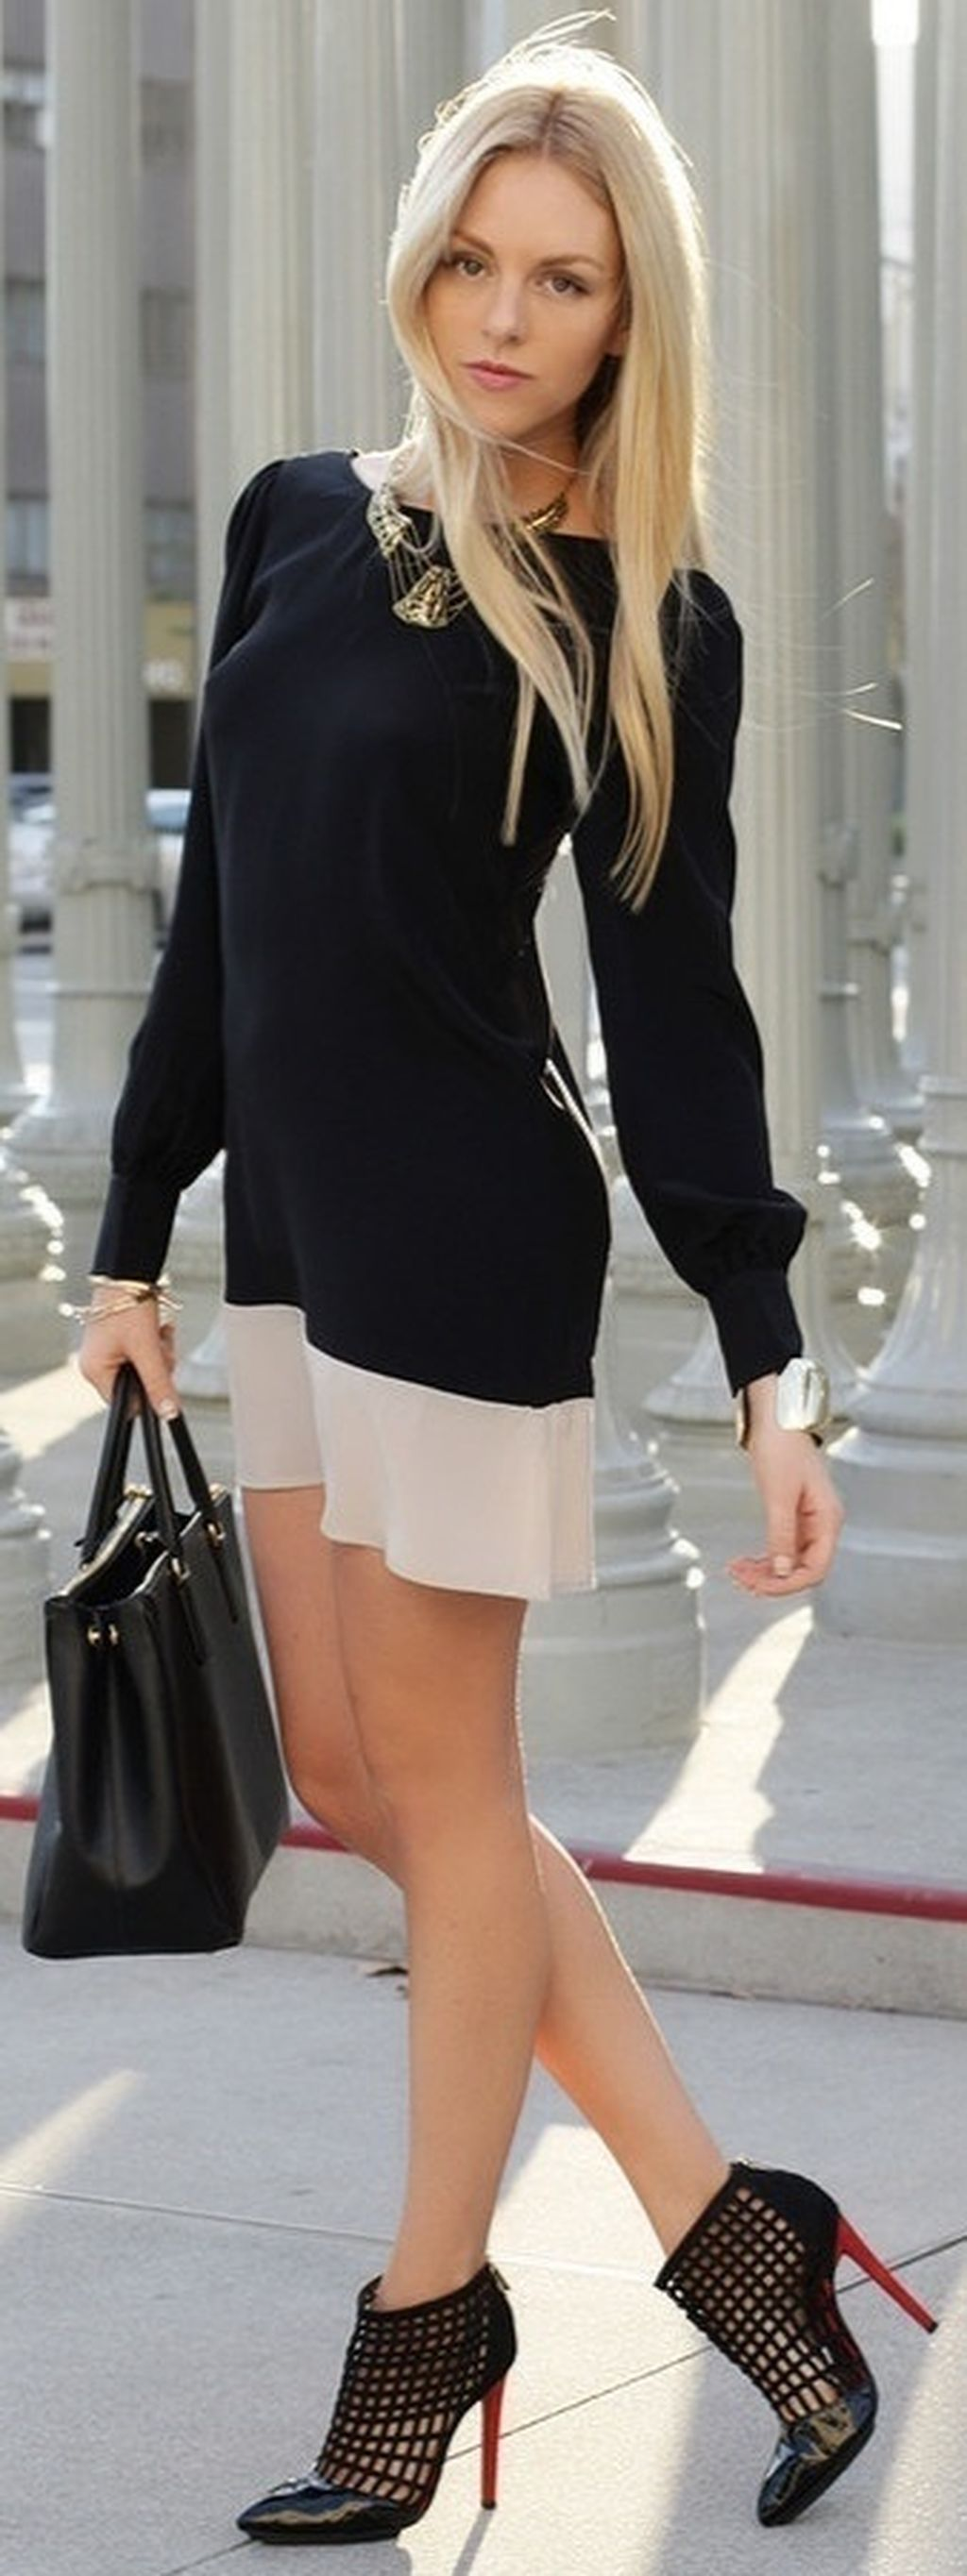 Cool classy and casual business outfits ideas with high heels